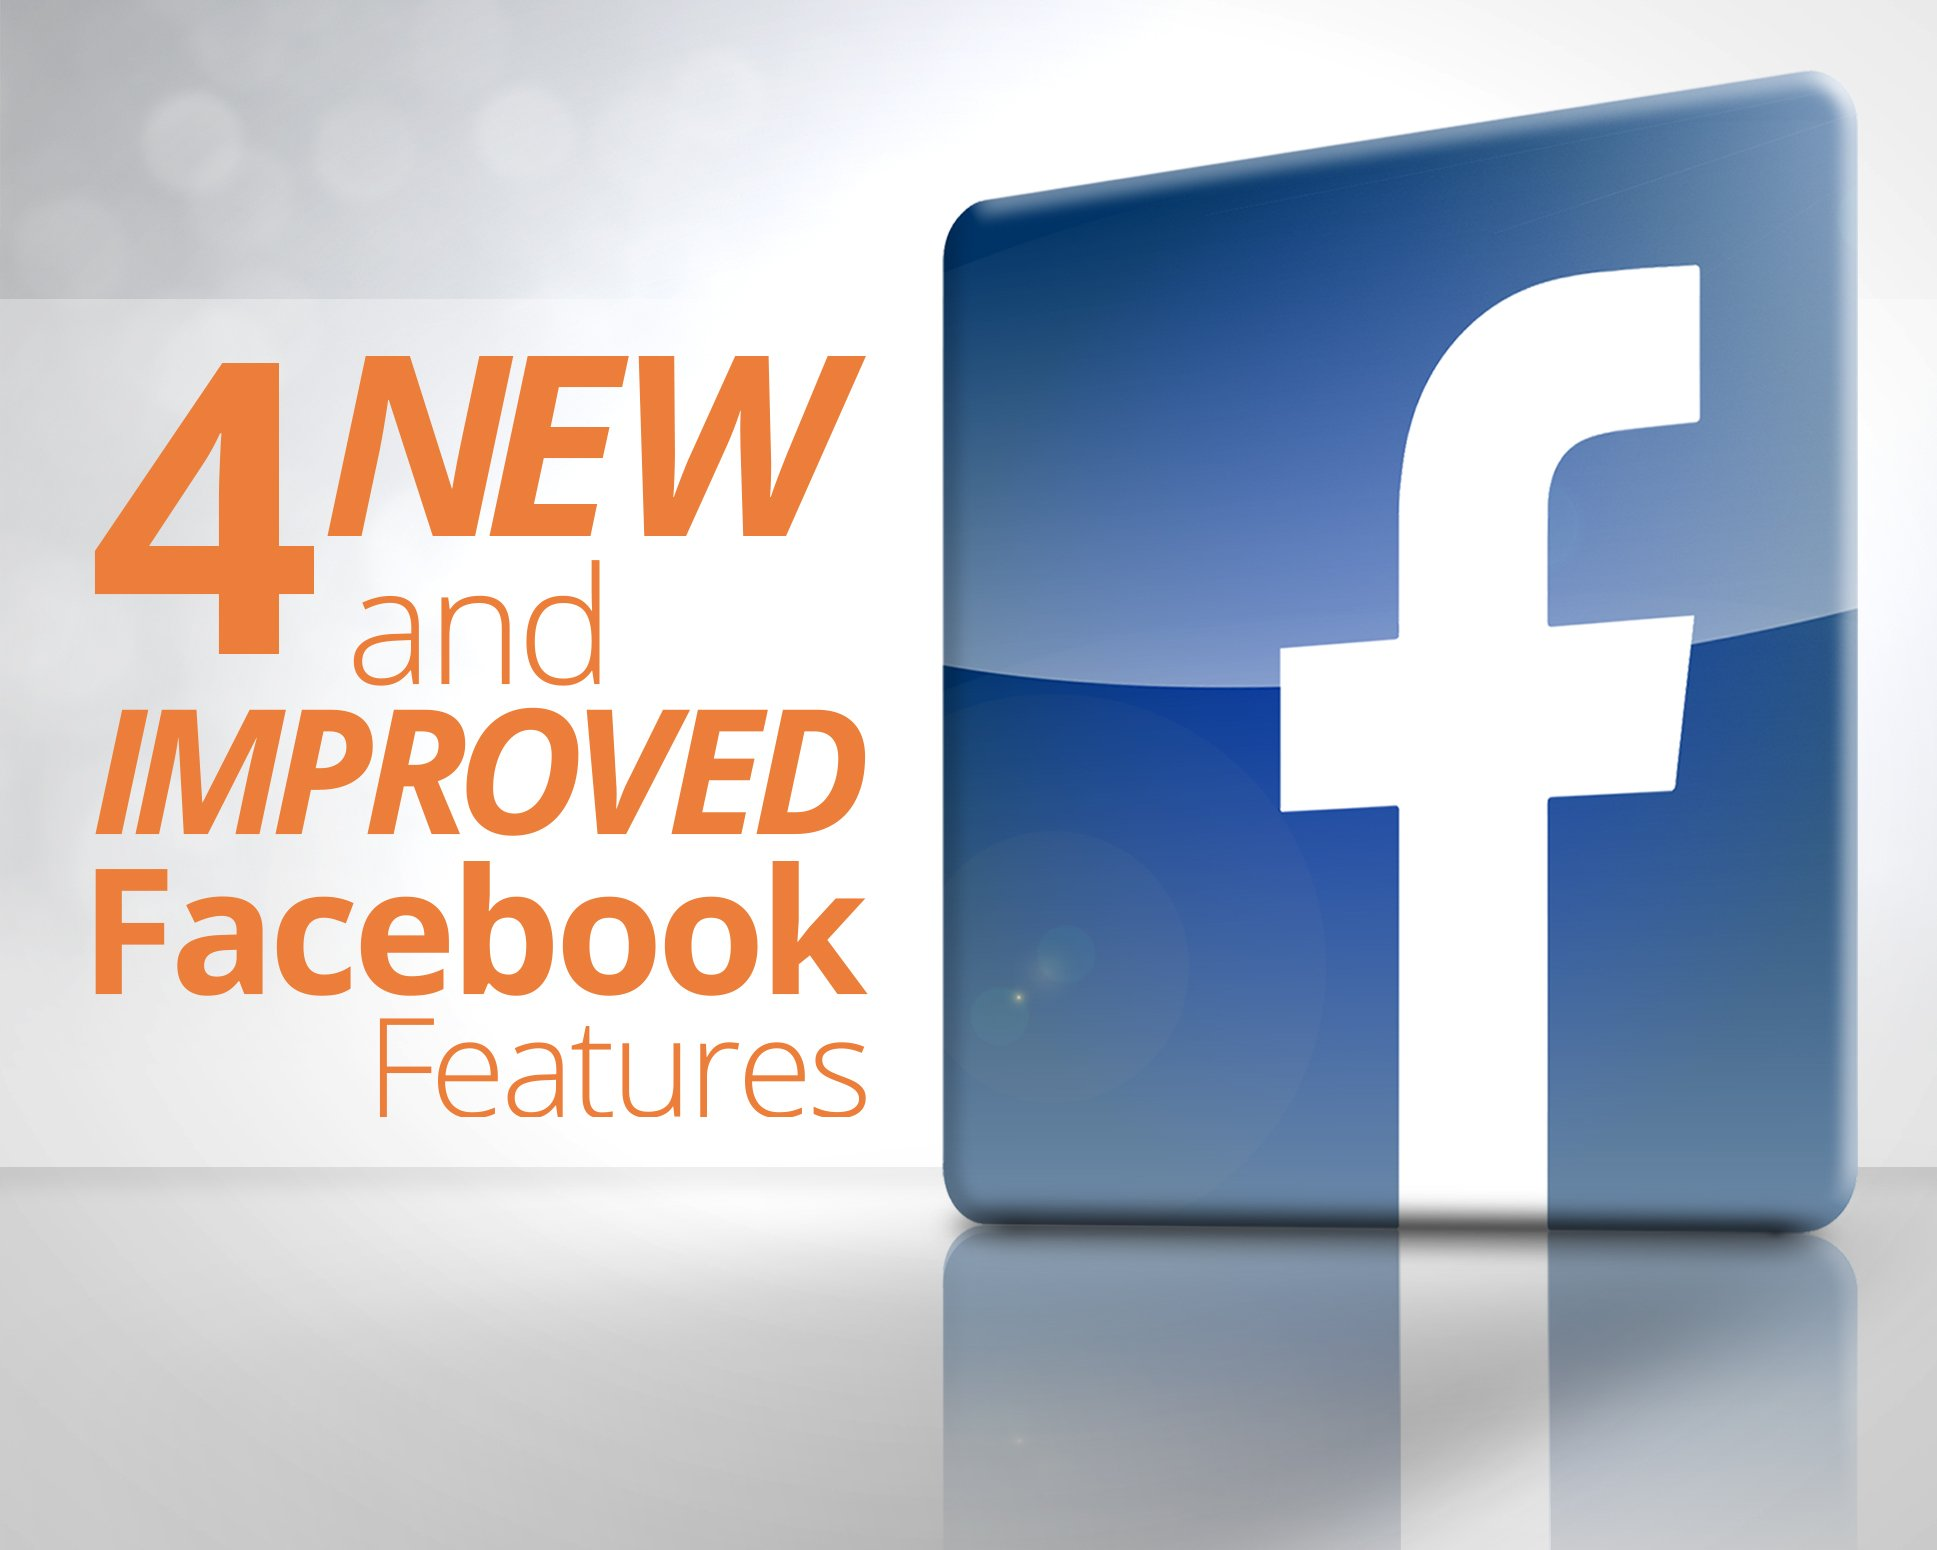 HDC 4 improved fb features